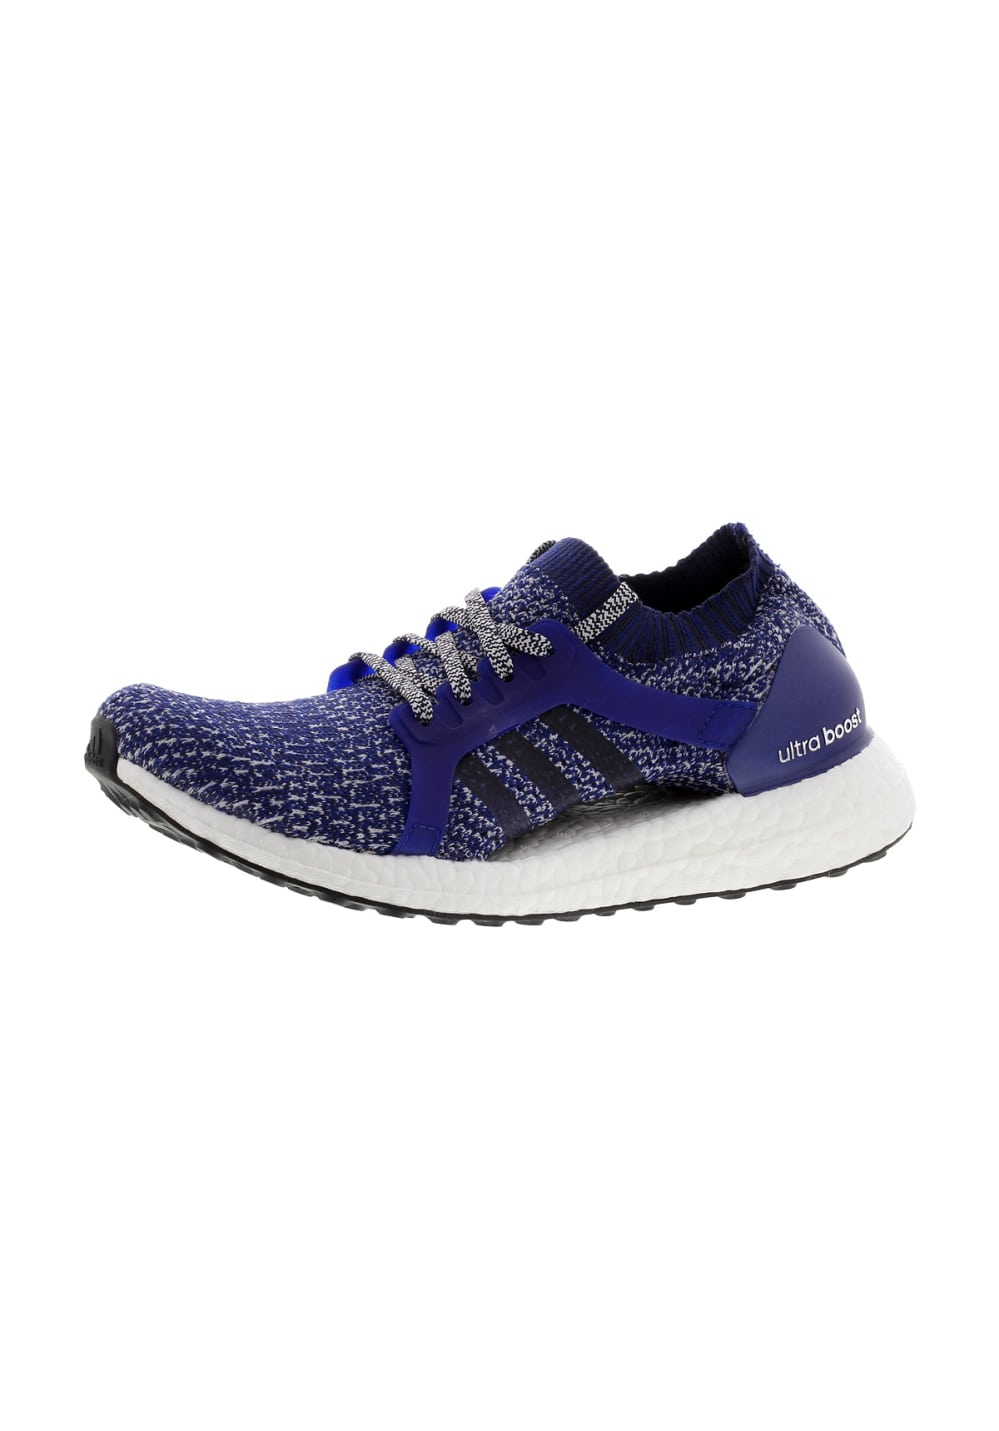 abac365d2 Next. -60%. adidas. UltraBOOST X - Running shoes for Women